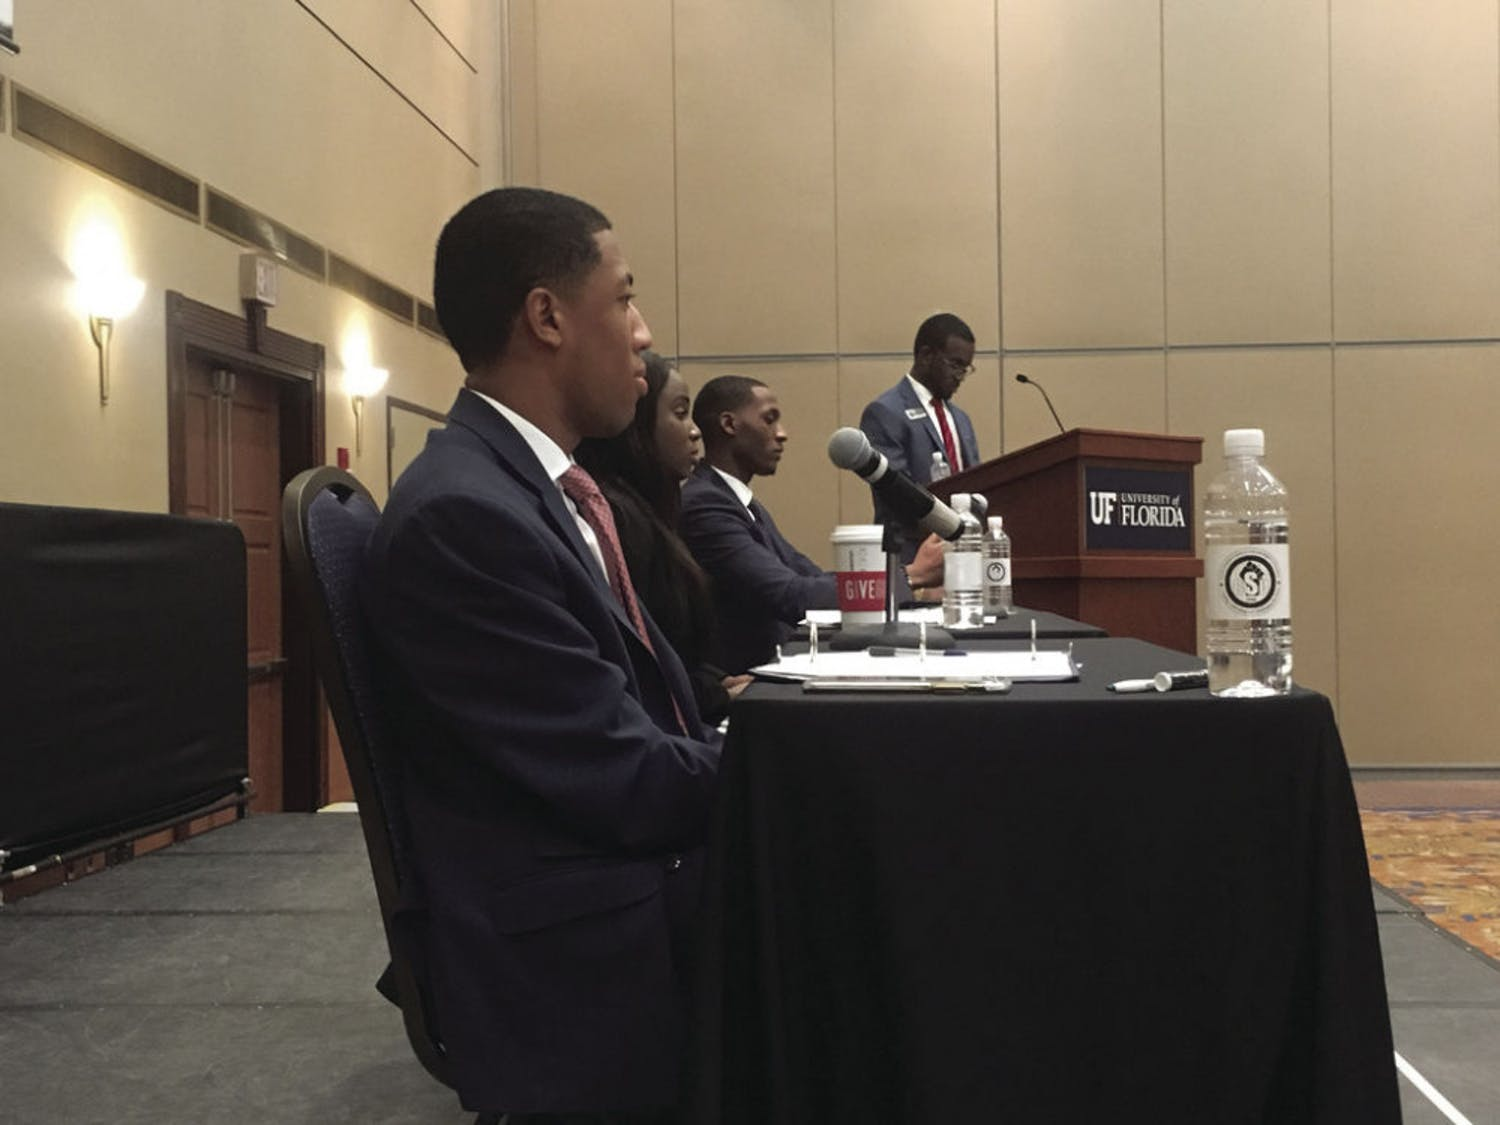 Student Body President candidates Ian Green, Janae Moodie and Revel Lubin answer audience questions at the Black Student Union debate. This is the first time in UF history three black students have run for Student Body president.